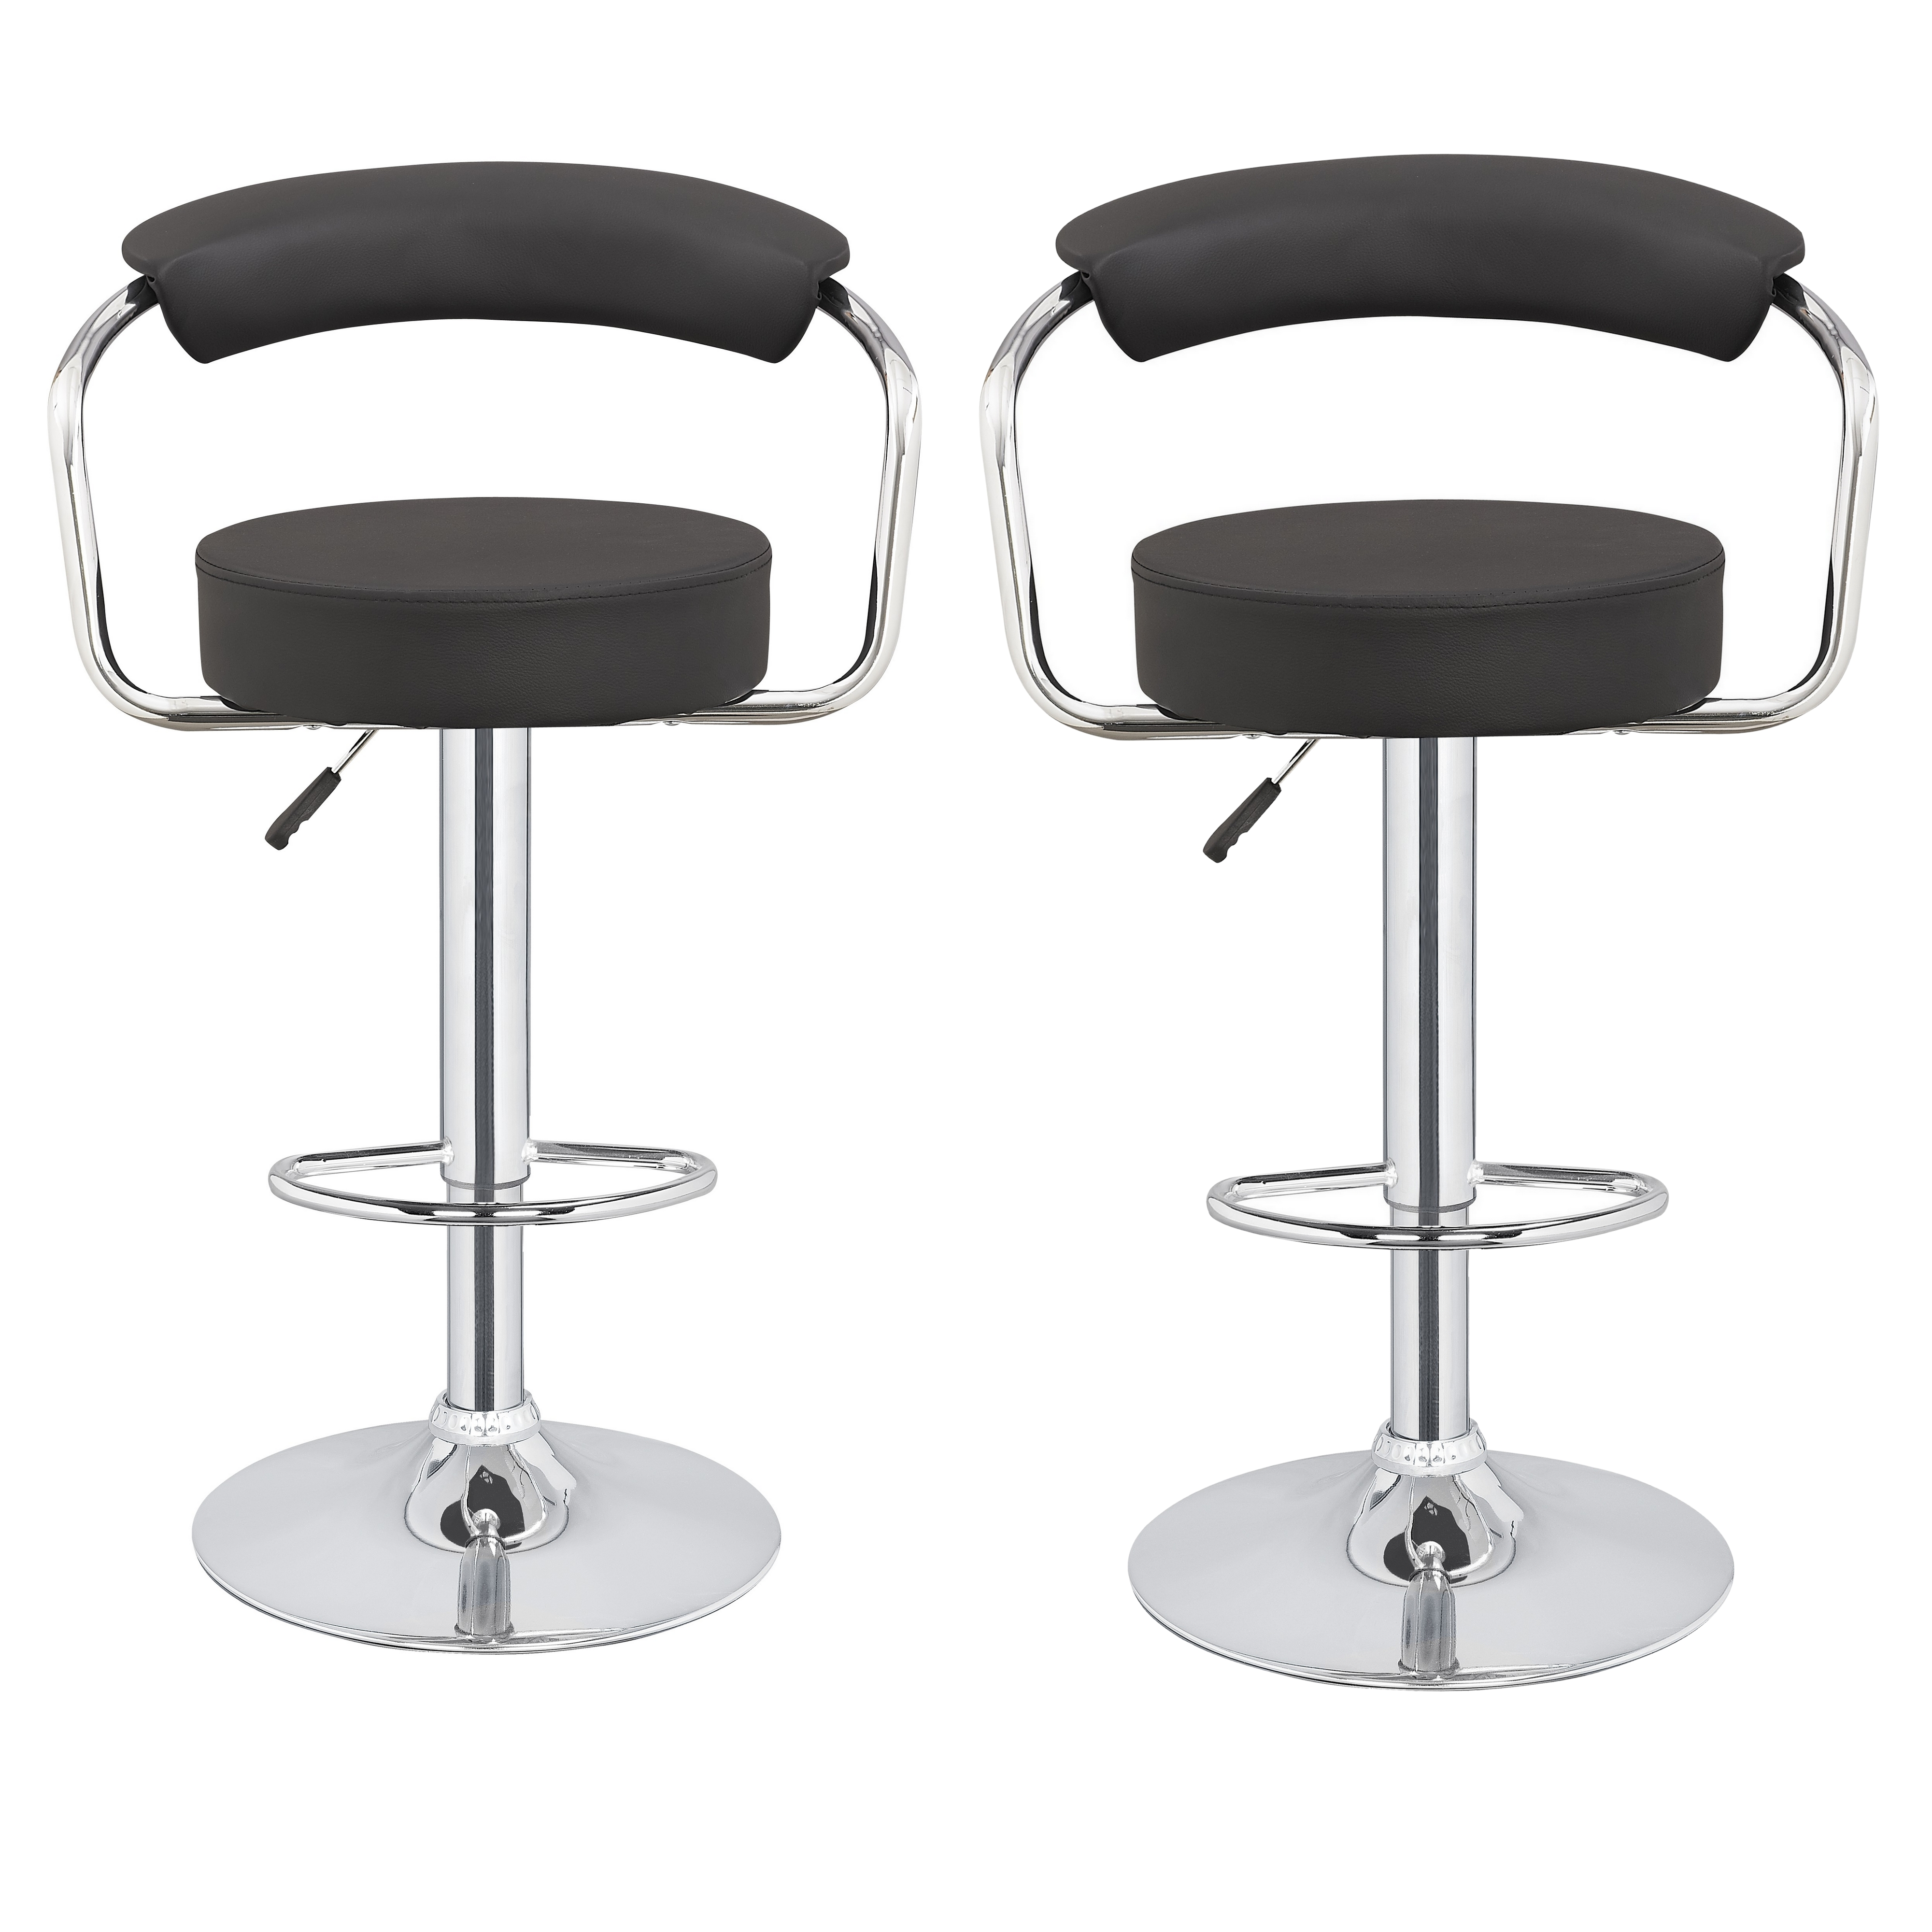 2 X Homegear M1 50s Diner Adjustable Swivel Faux Leather